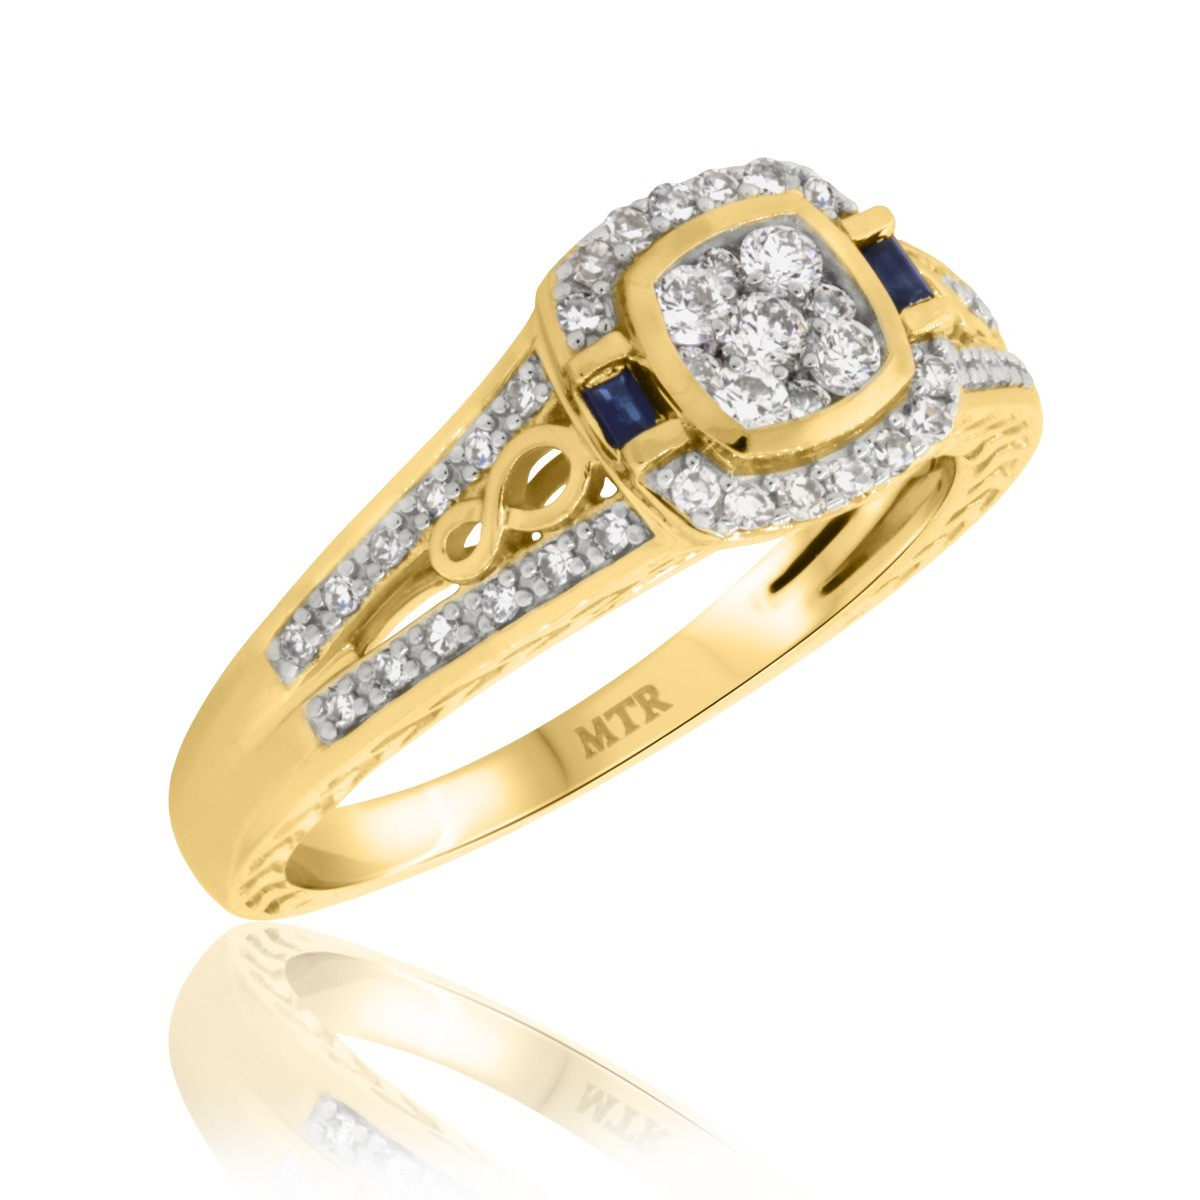 1/2 CT. T.W. Diamond Engagement Ring 14K Yellow Gold